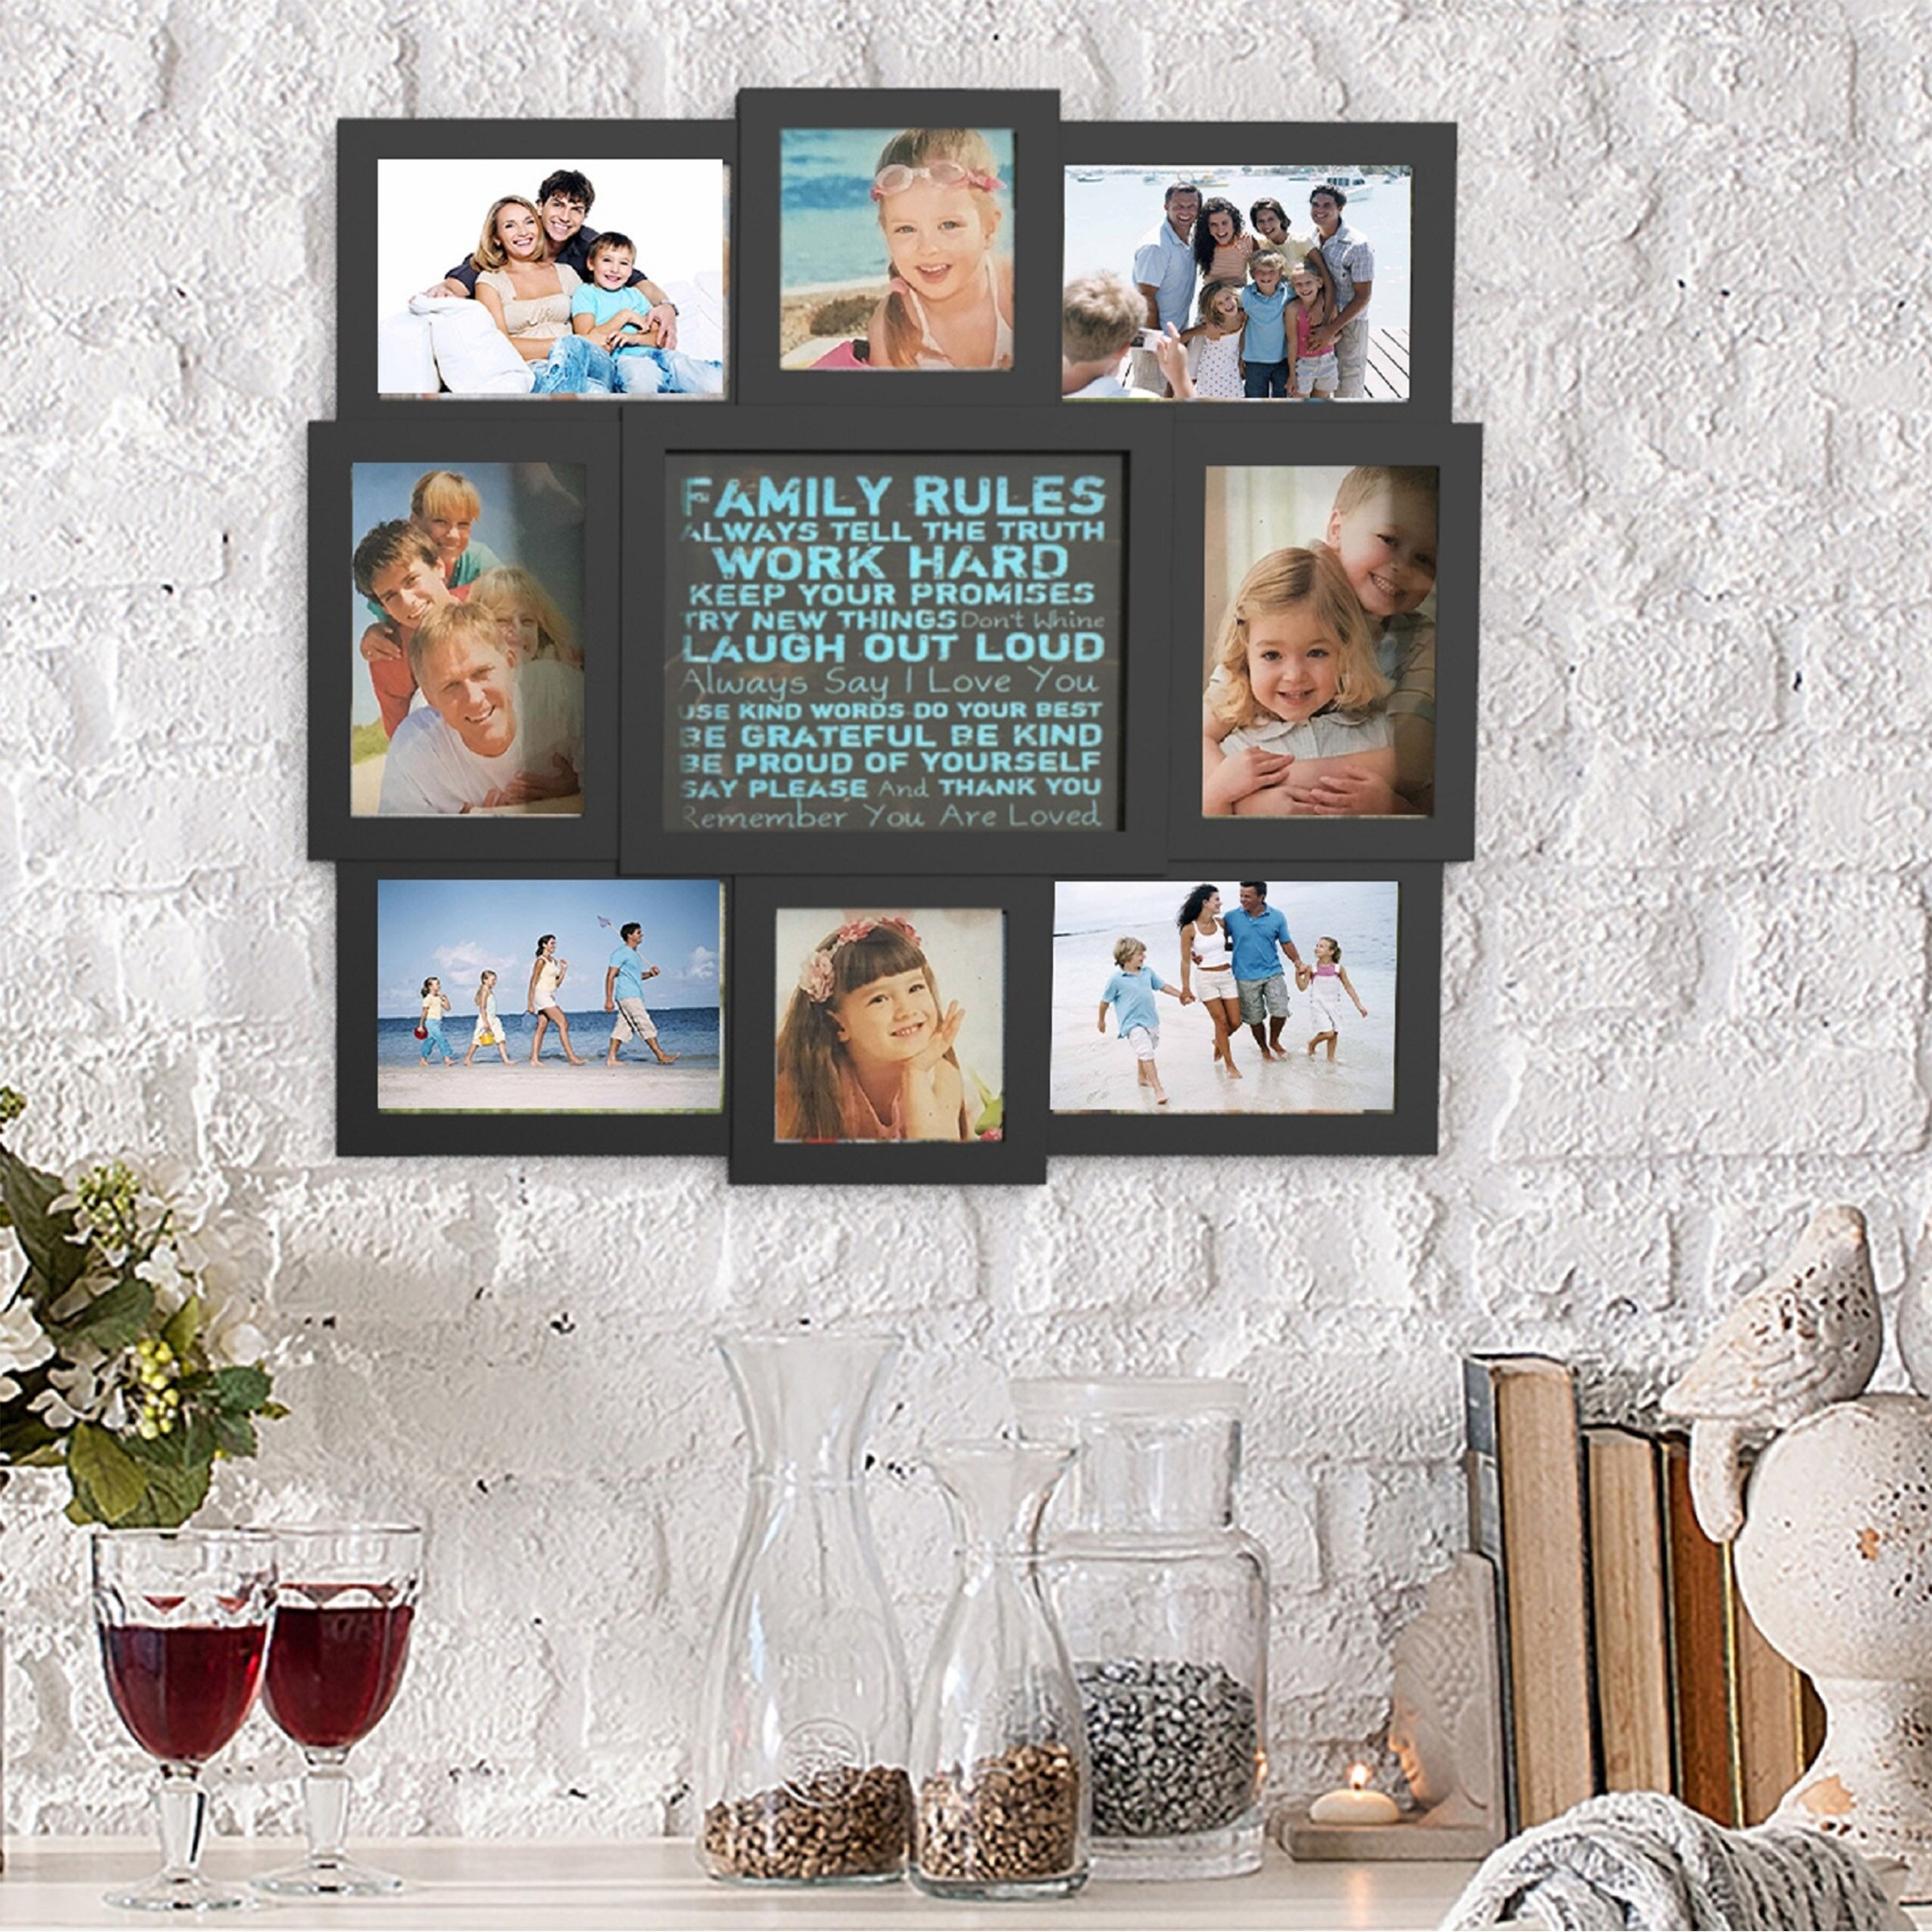 Shop Family Rules Collage Picture Frame with 8 Openings for Six 4x6 ...